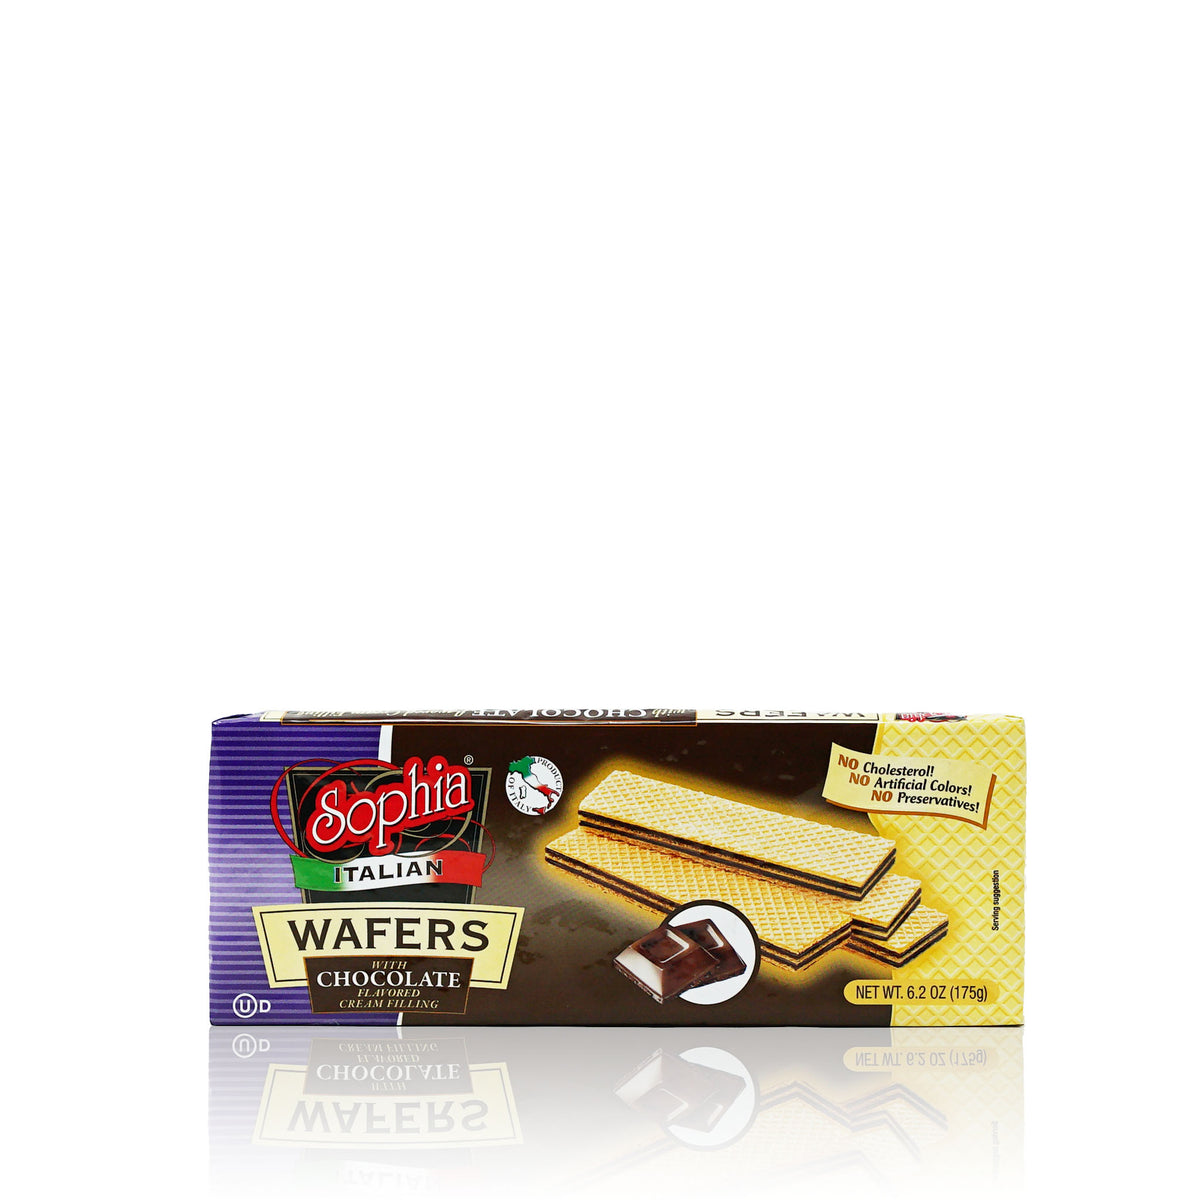 Sophia Wafers-Italian Wafer Fingers, Chocolate 6.2oz